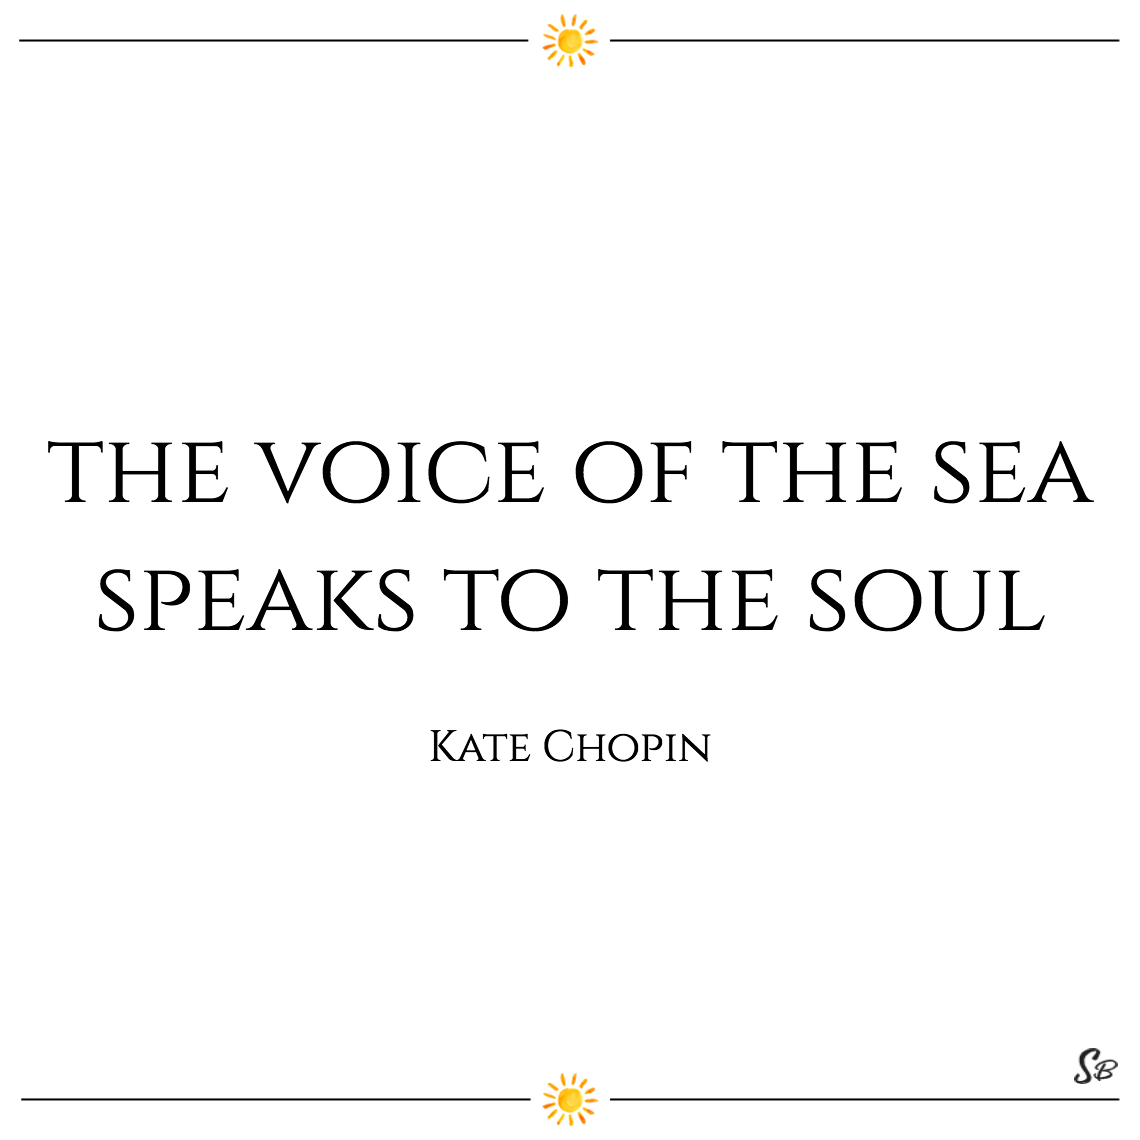 The voice of the sea speaks to the soul kate chopin